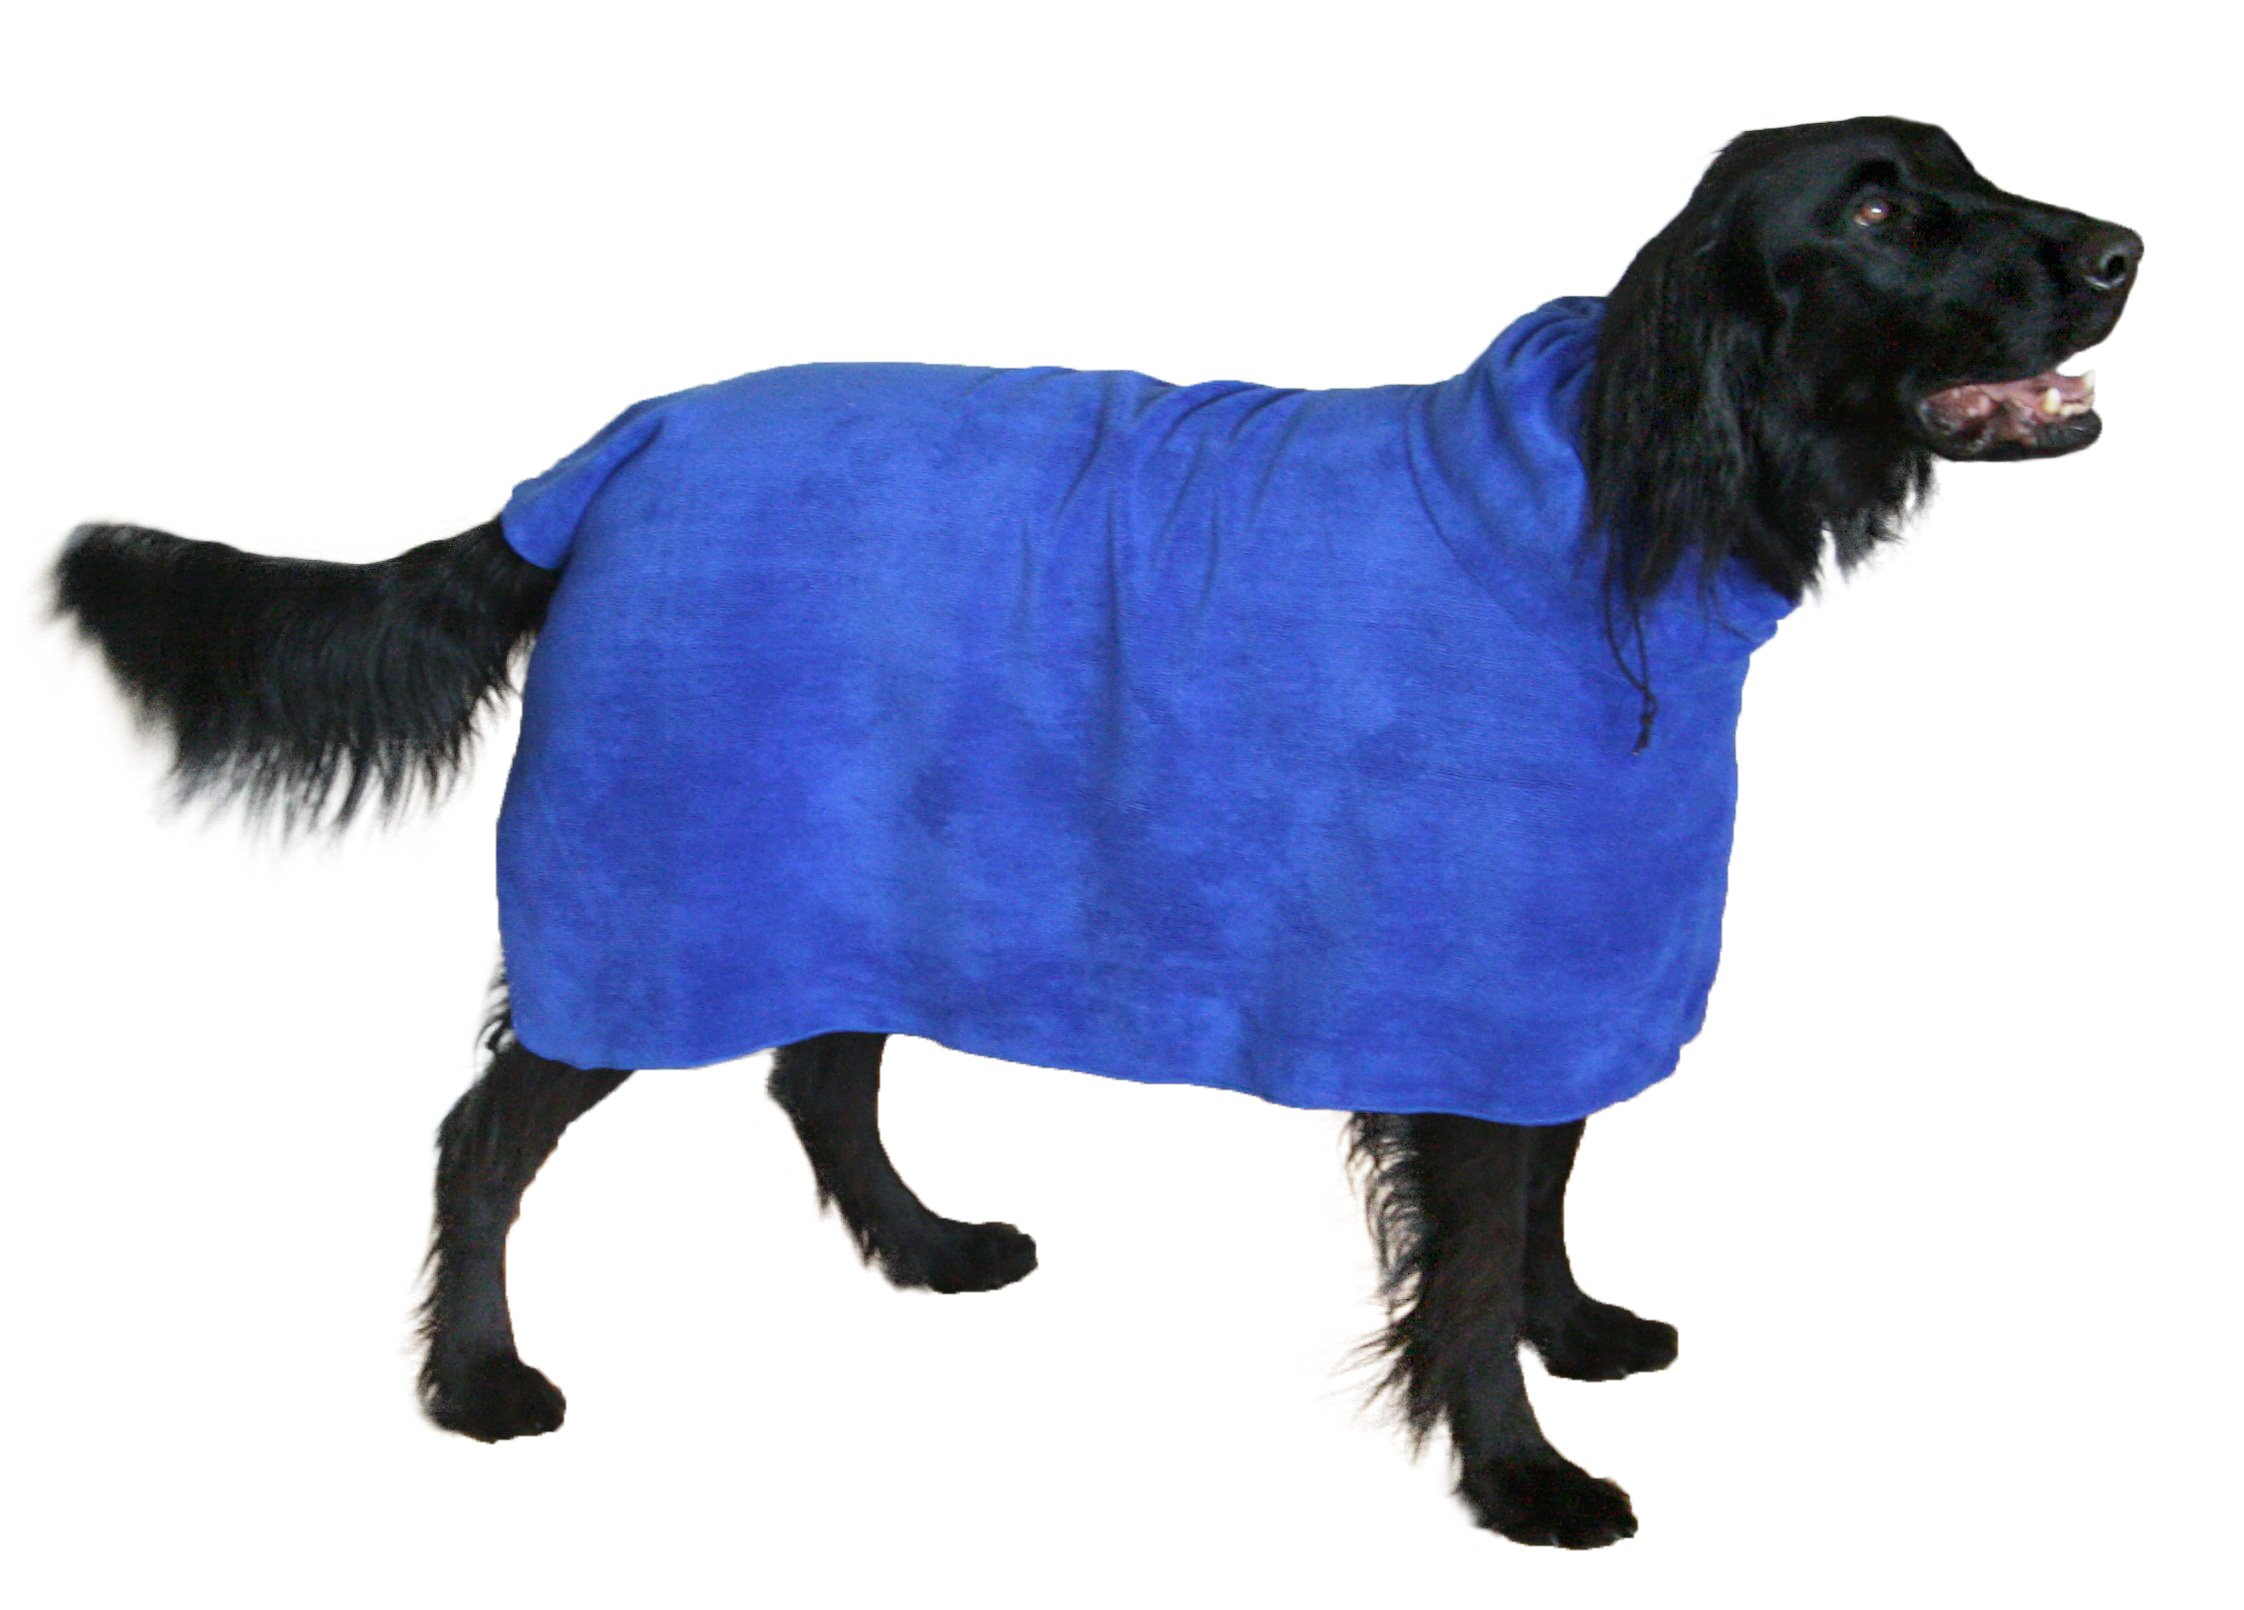 THE SNUGGLY DOG Easy Wear Dog Towel. Luxuriously Soft, Fast Drying 400gsm Microfiber. Soft Belt included for a Warm Plush Dog Robe. X-Large Blue